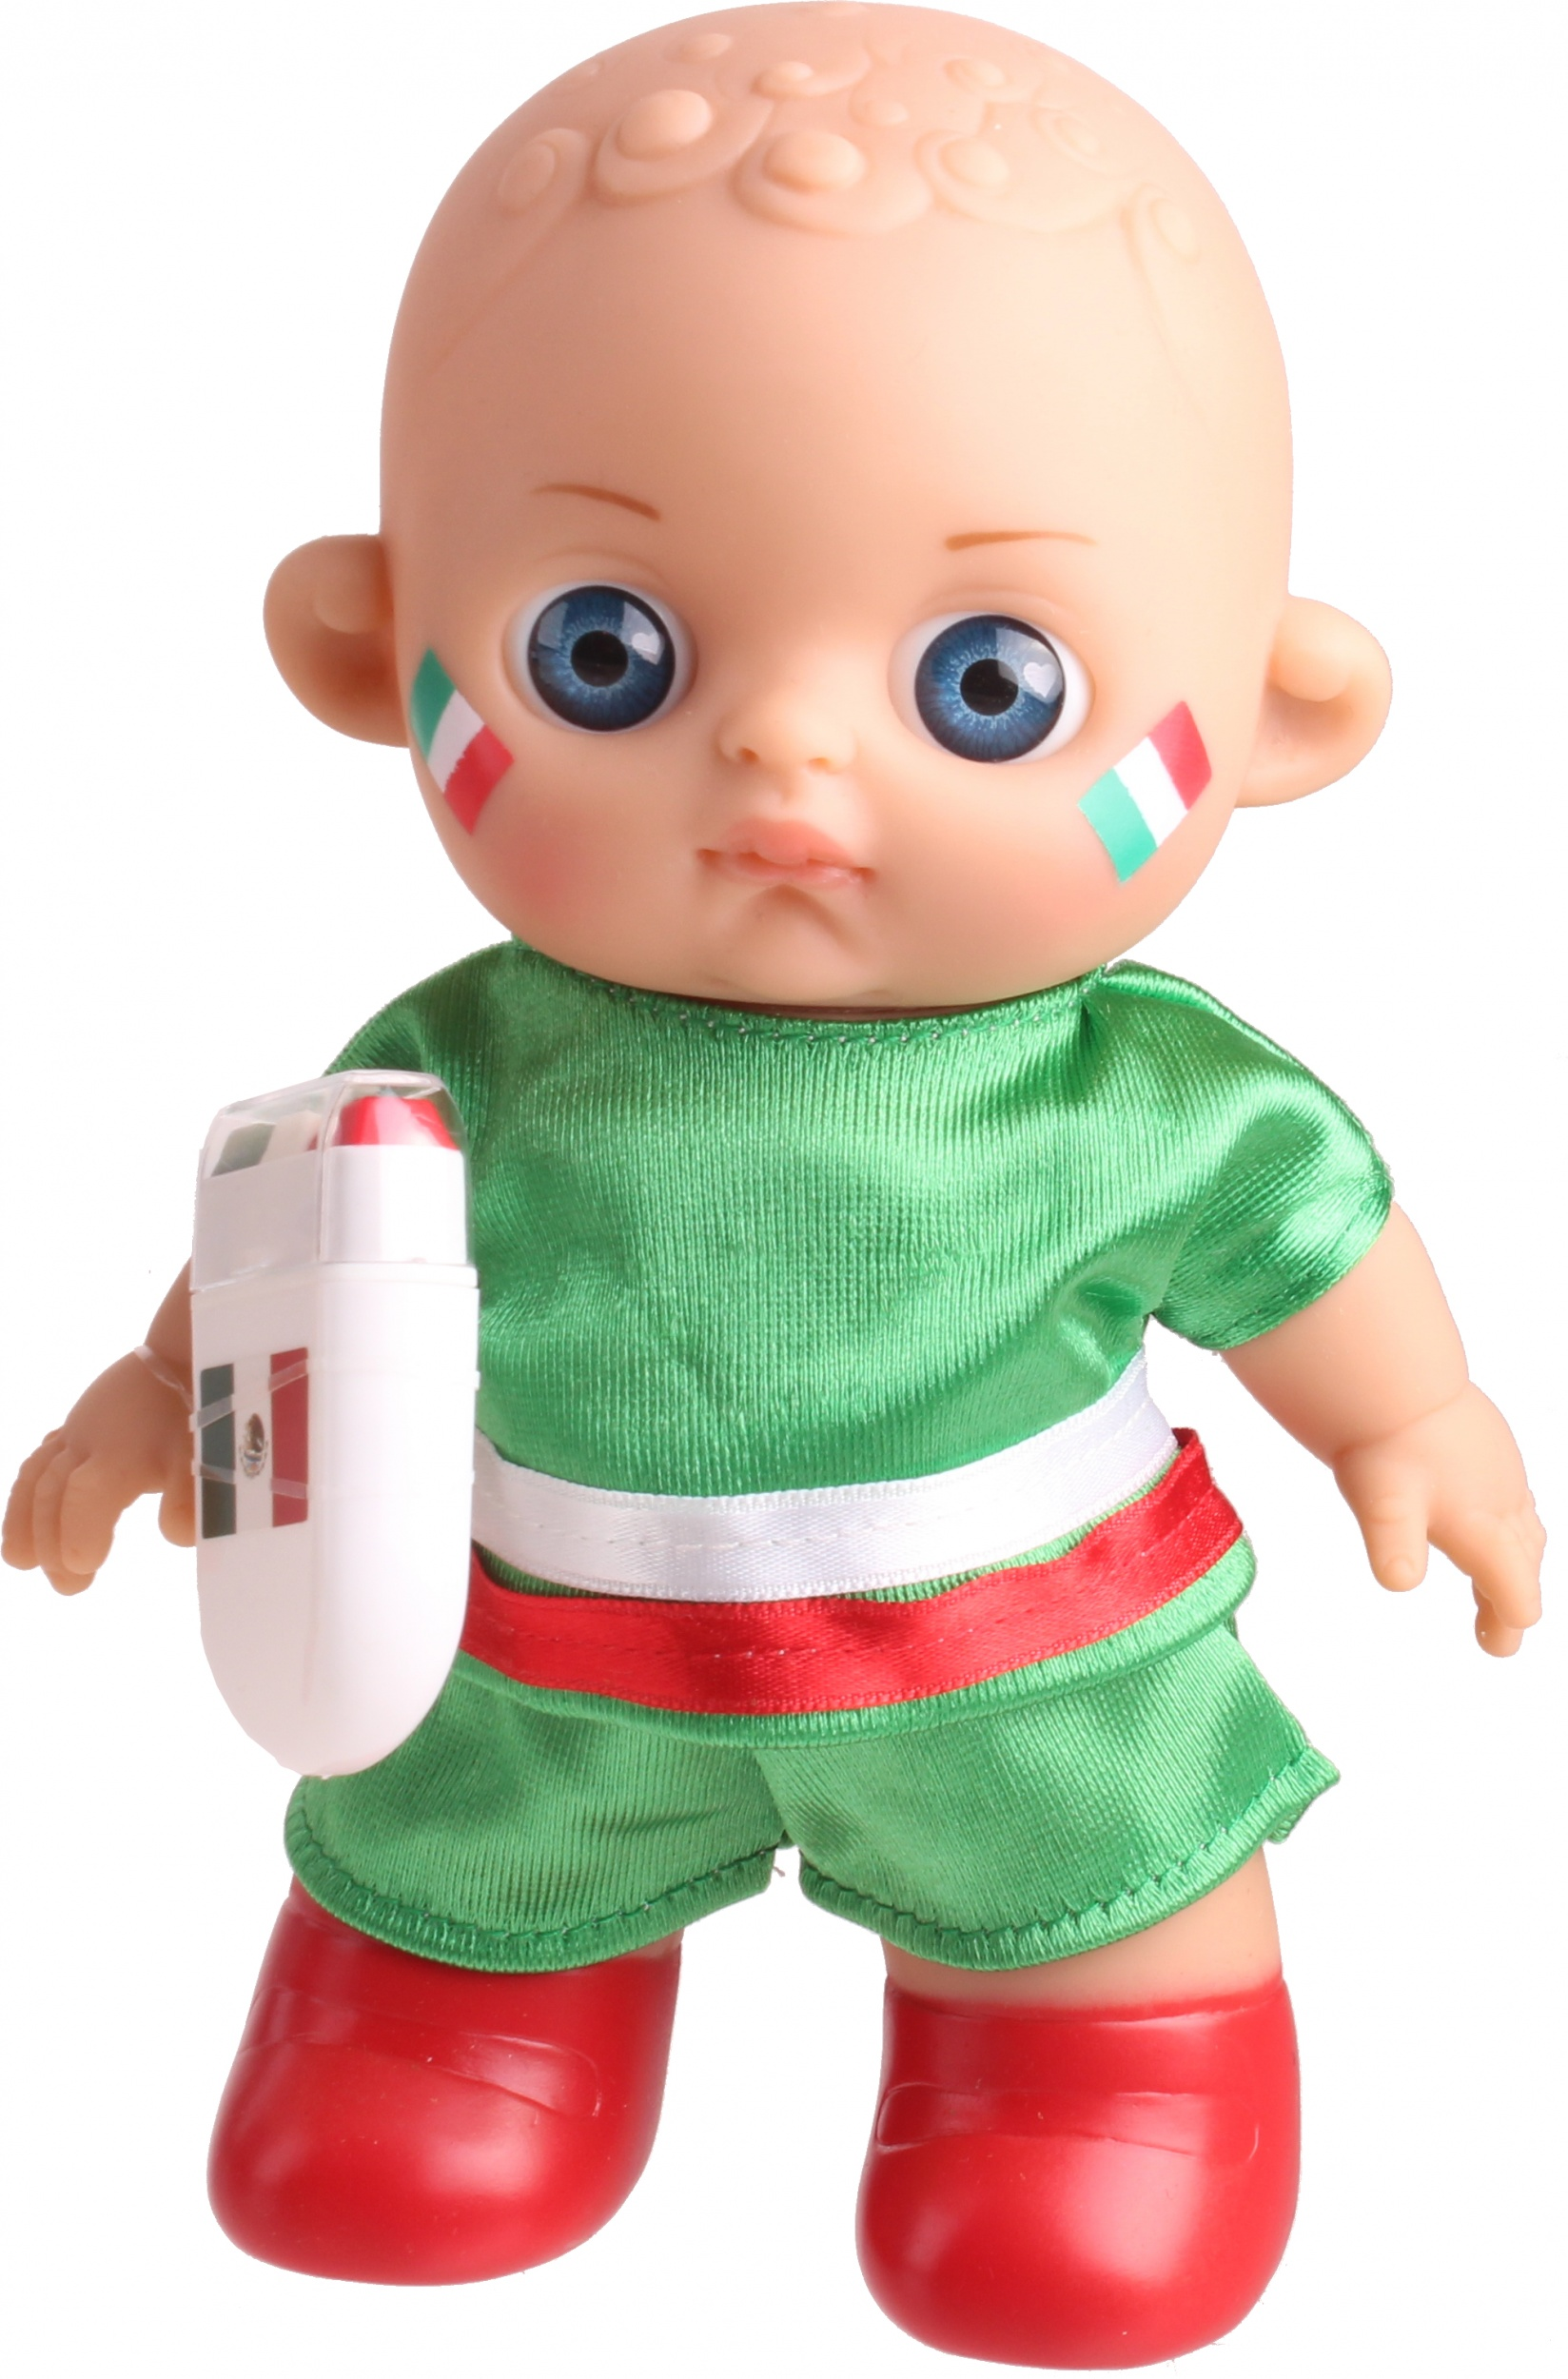 Falca Football Baby Doll With Makeup Mexico20 Cm Twm Tom Wholesale Management